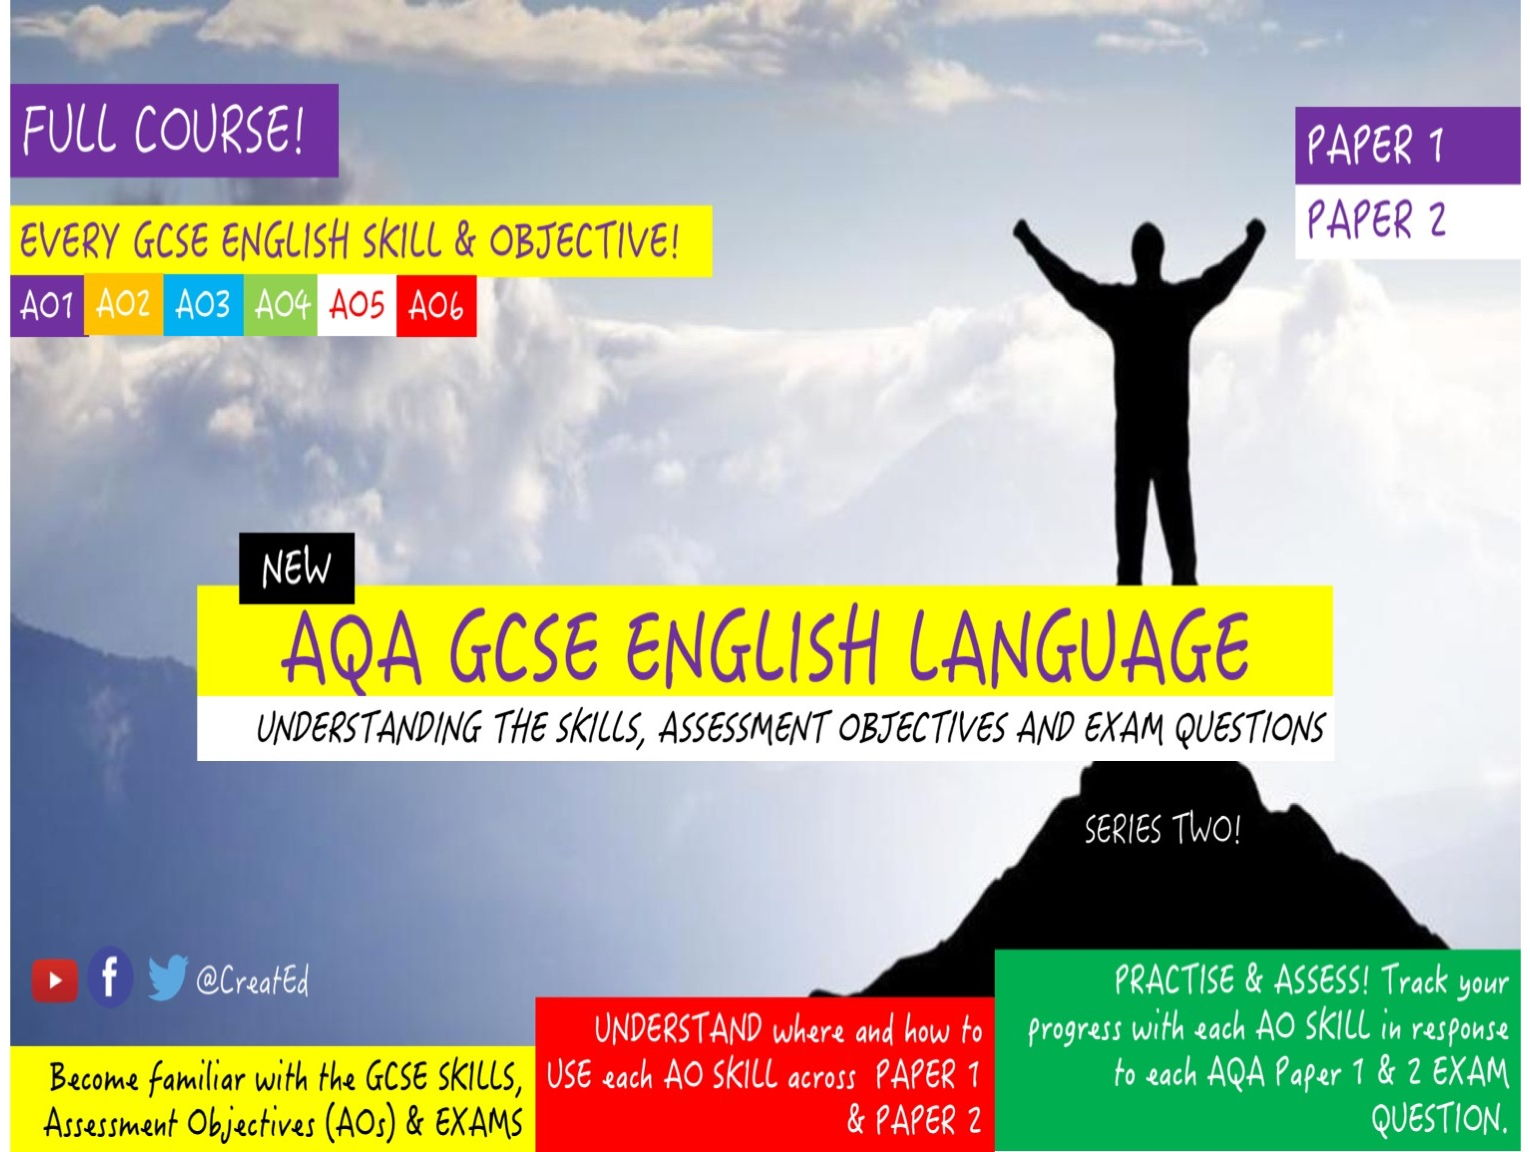 New GCSE English Language, EVERY Skill, AO & Exam Question, COMPLETE 5 -WEEK SERIES of TEACHING UNITS & Revision Guides.